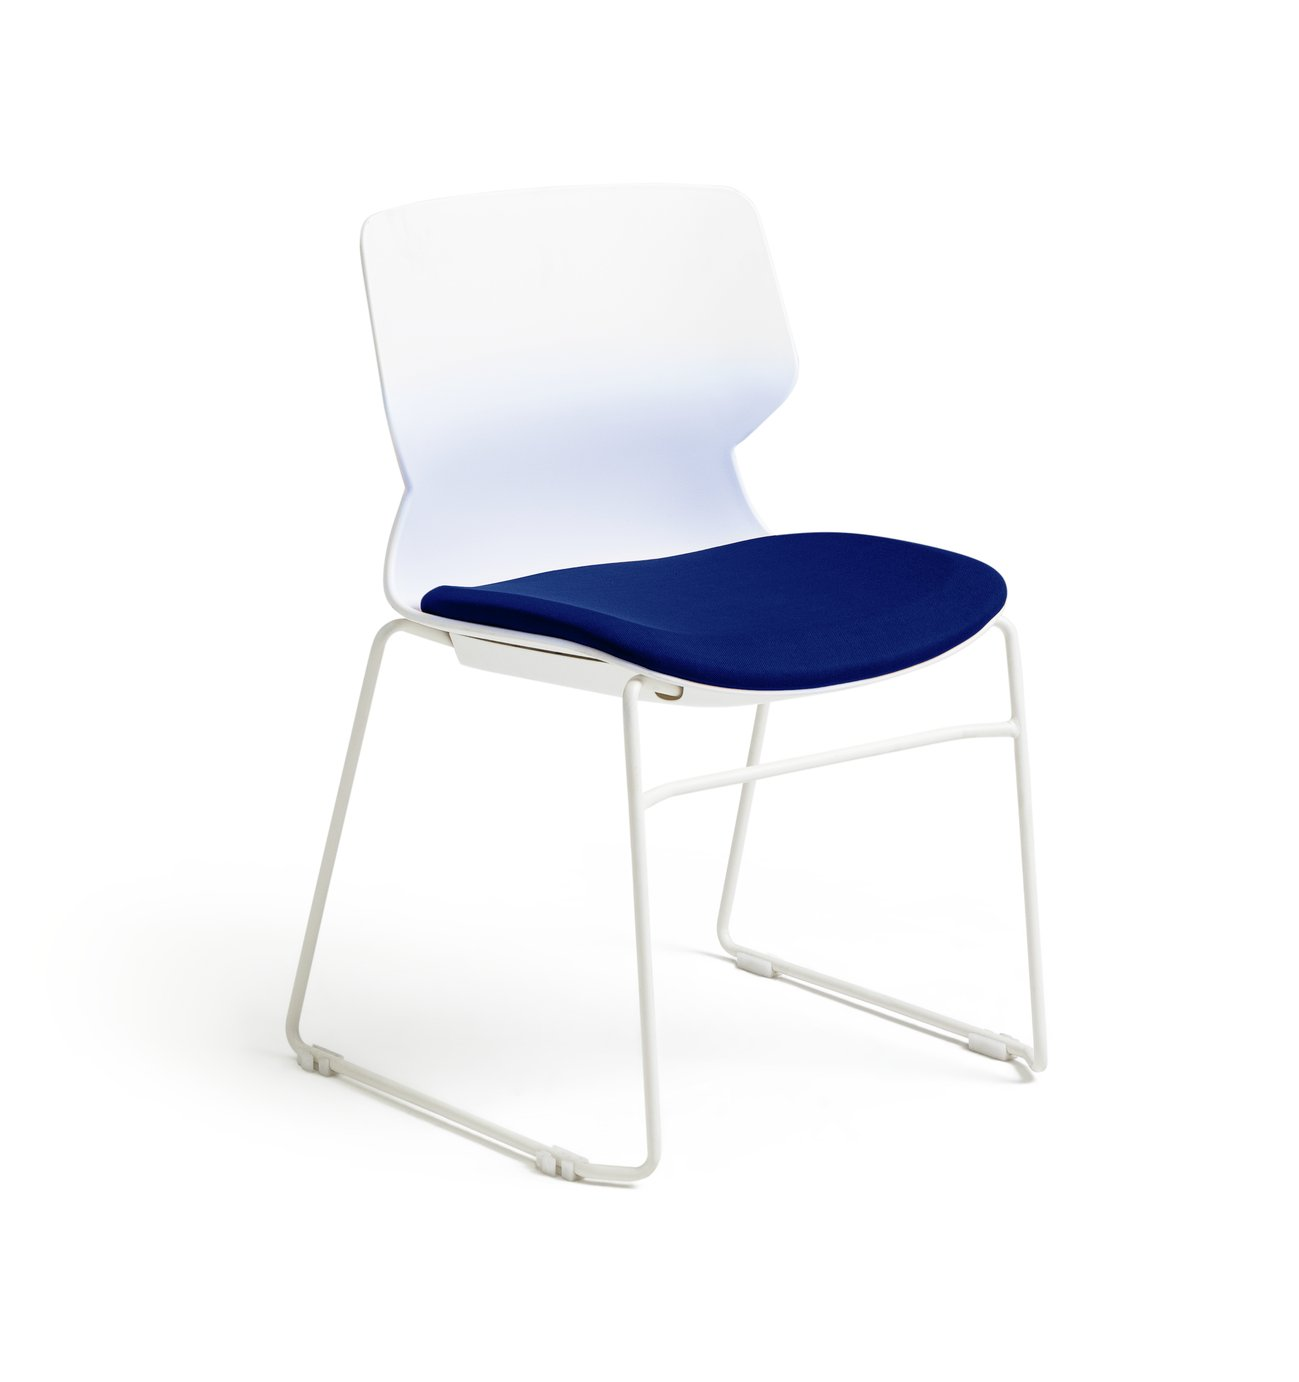 Habitat Tayte Office Chair - White and Teal